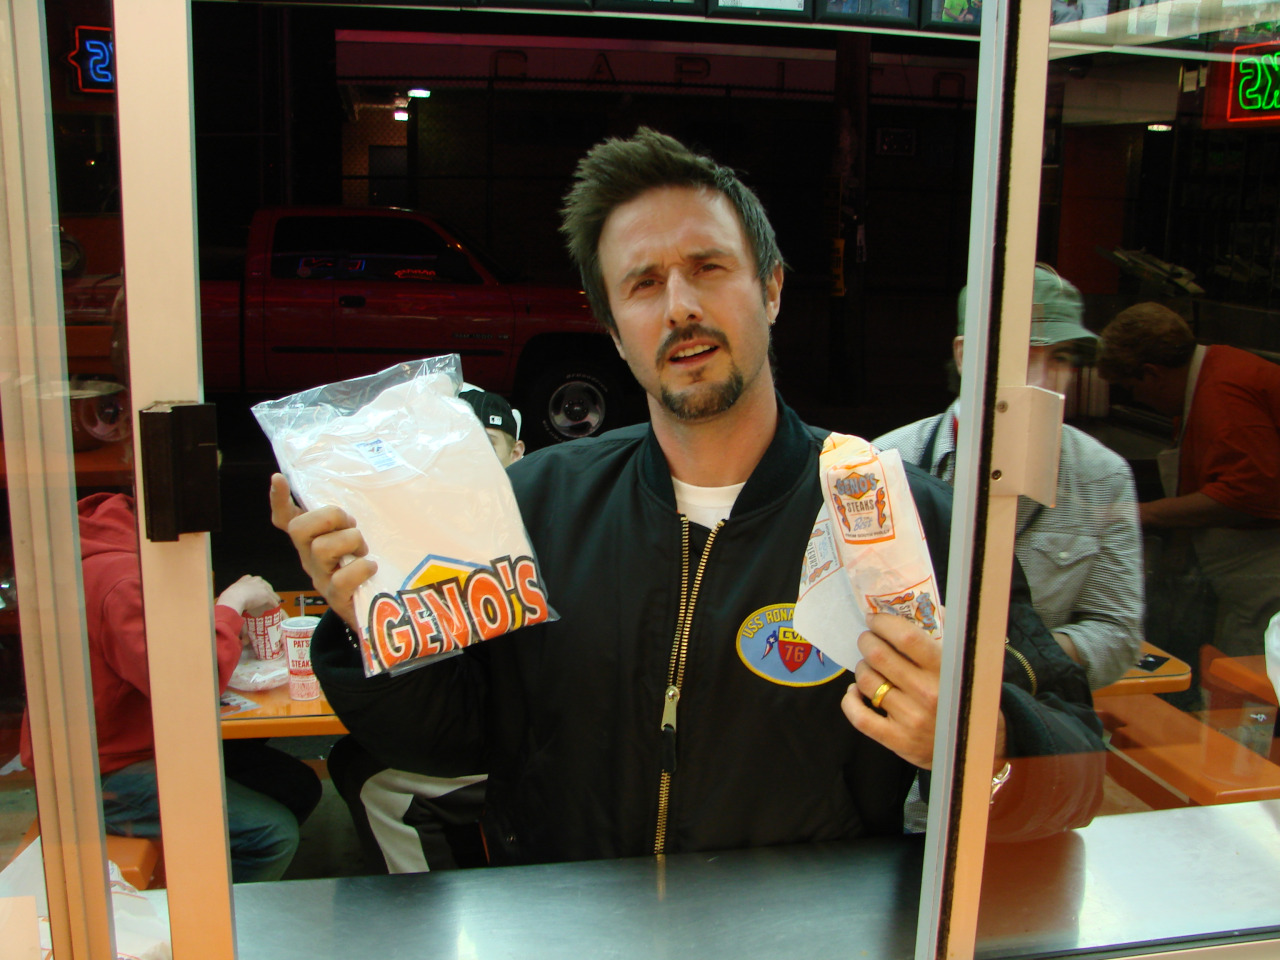 David Arquette at Geno's